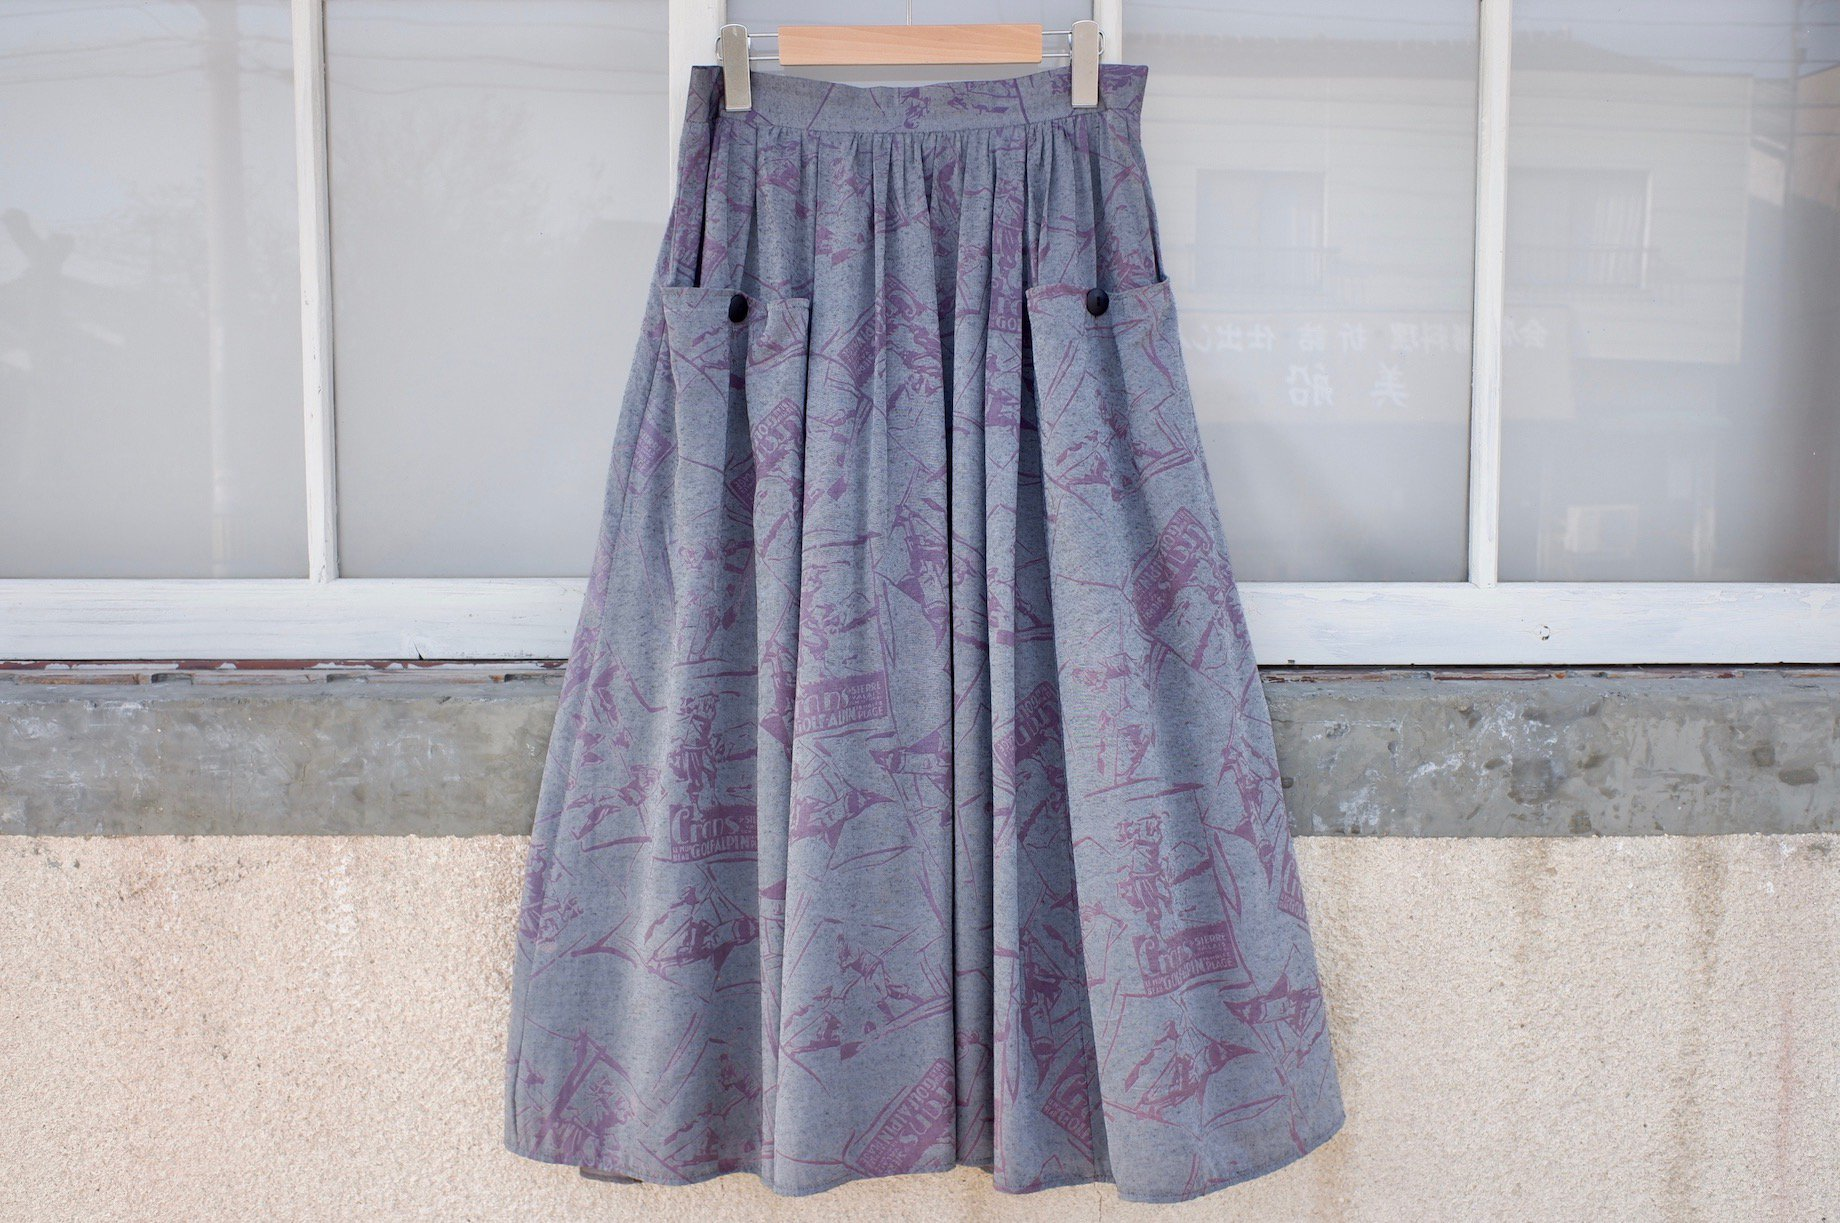 <img class='new_mark_img1' src='//img.shop-pro.jp/img/new/icons13.gif' style='border:none;display:inline;margin:0px;padding:0px;width:auto;' />the lawn returns to nature skirt